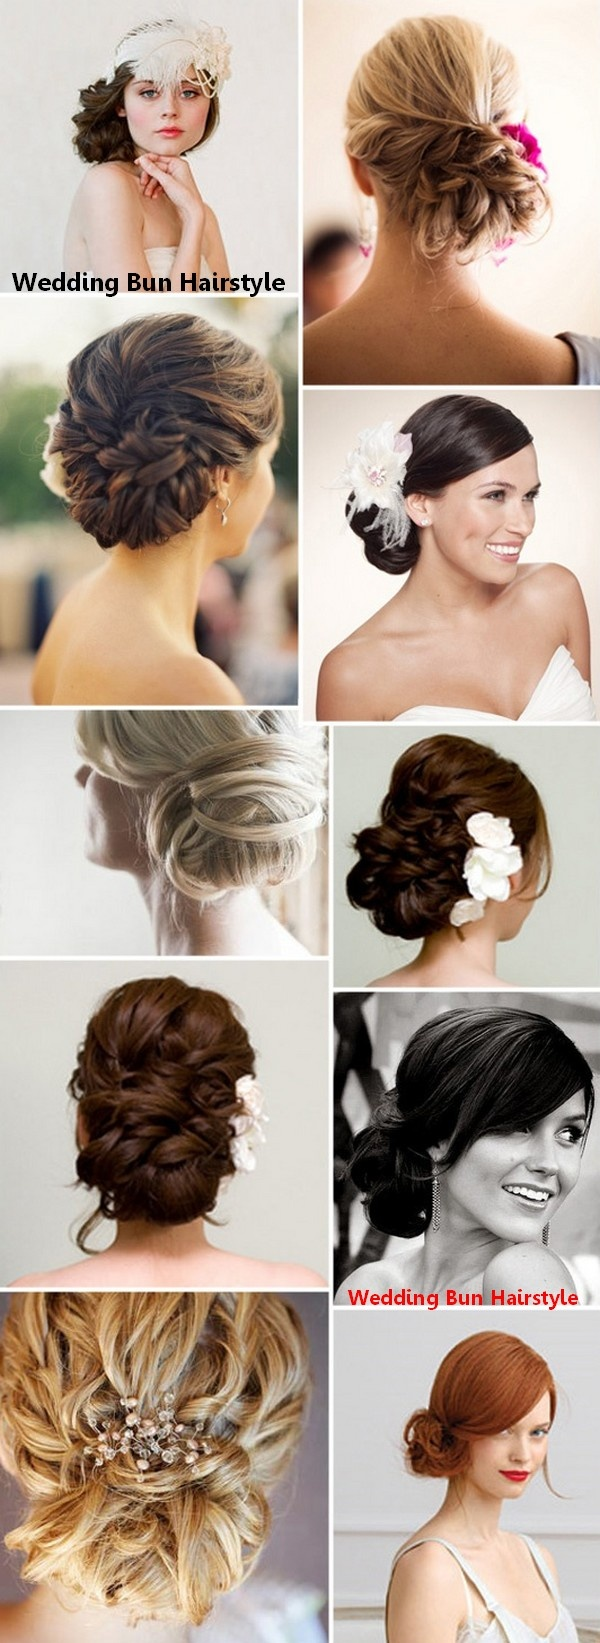 Wedding Bun Hairstyle-- for any formal occasion